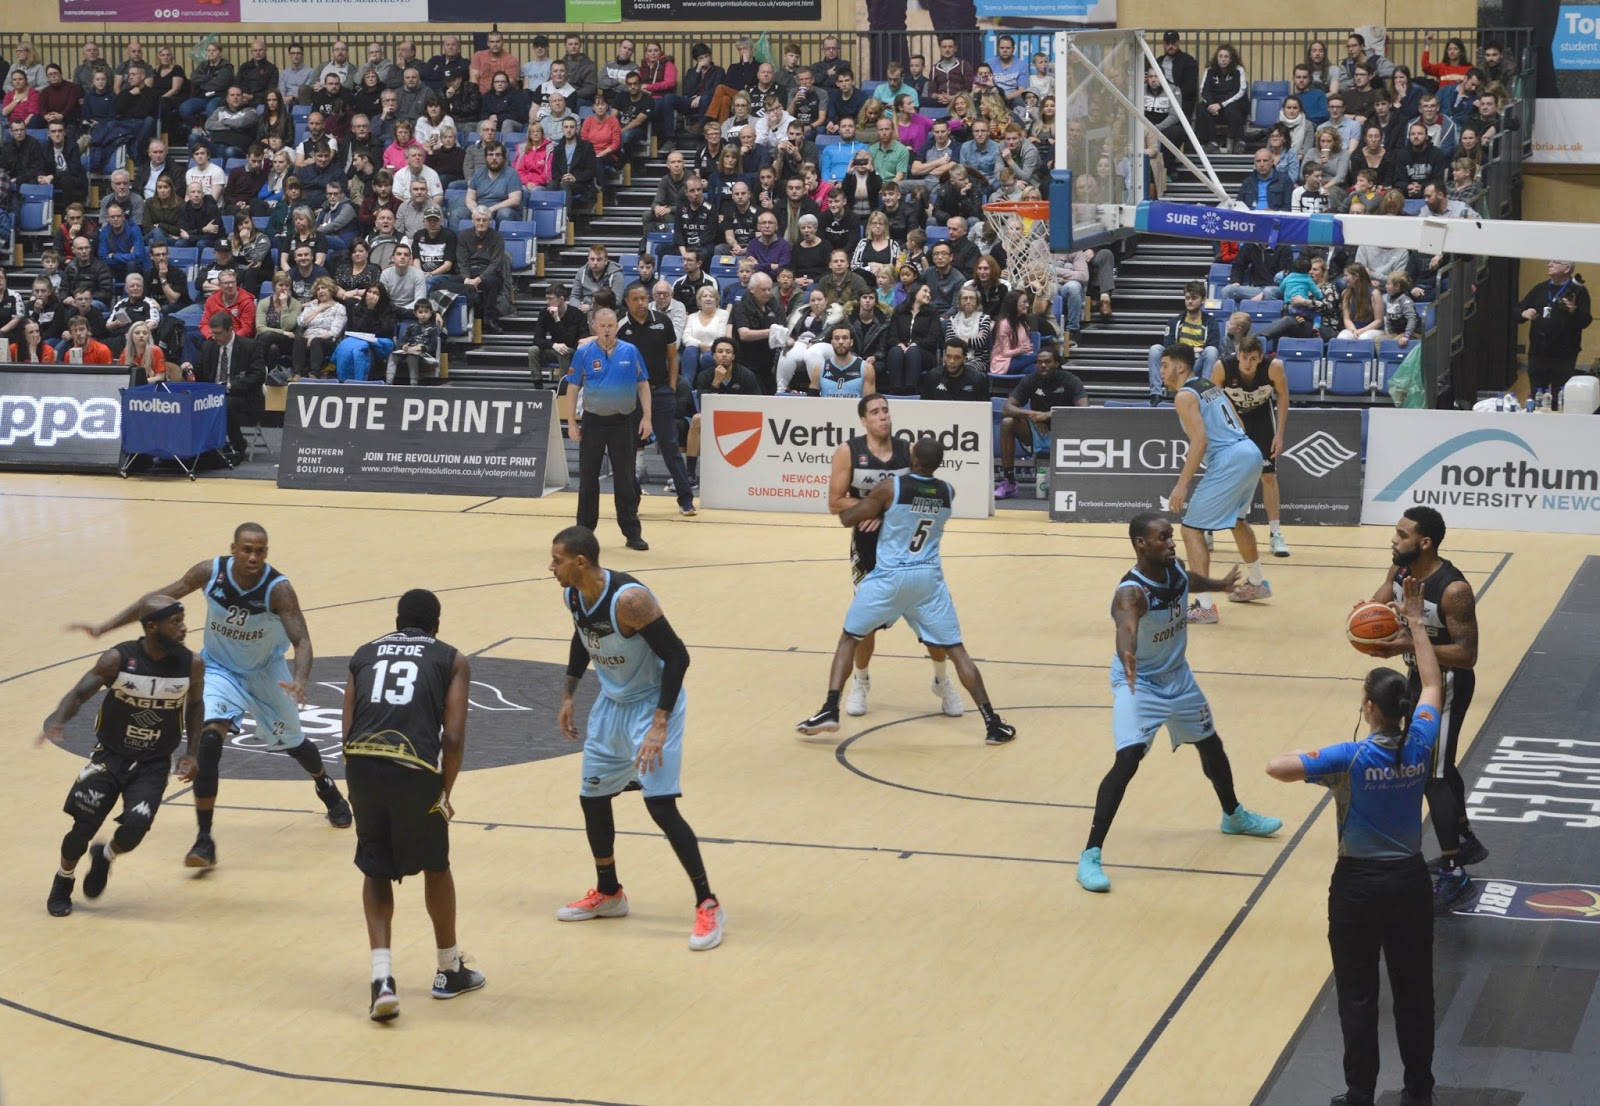 Date Night at the Newcastle Eagles Basketball Game, Sport Central